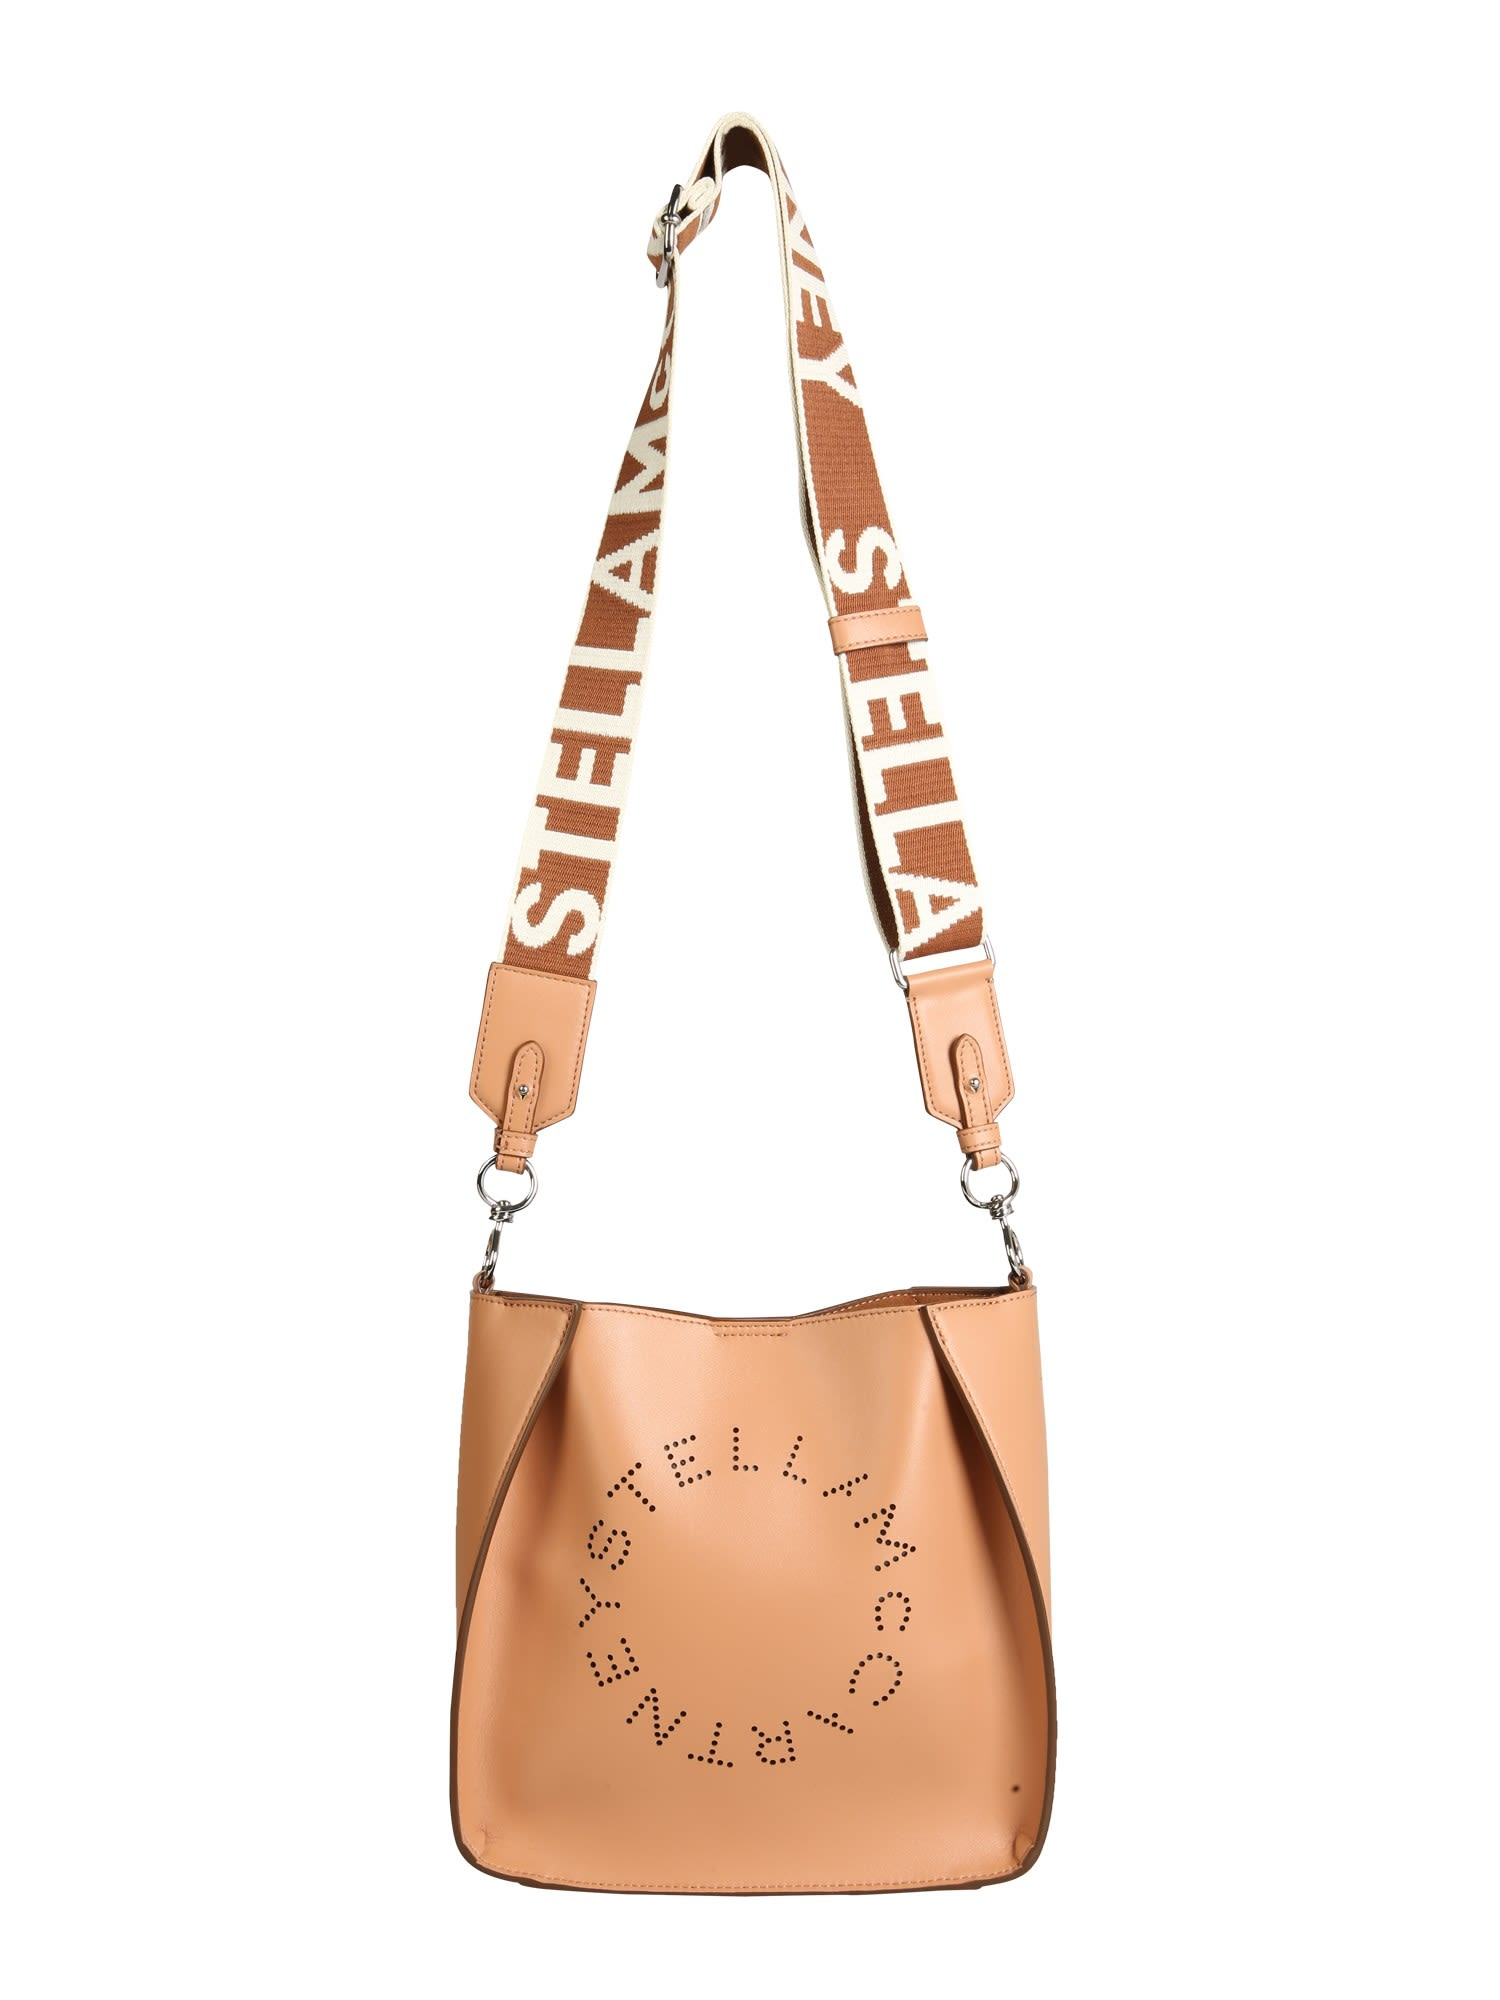 Stella Mccartney SHOULDER BAG WITH LOGO